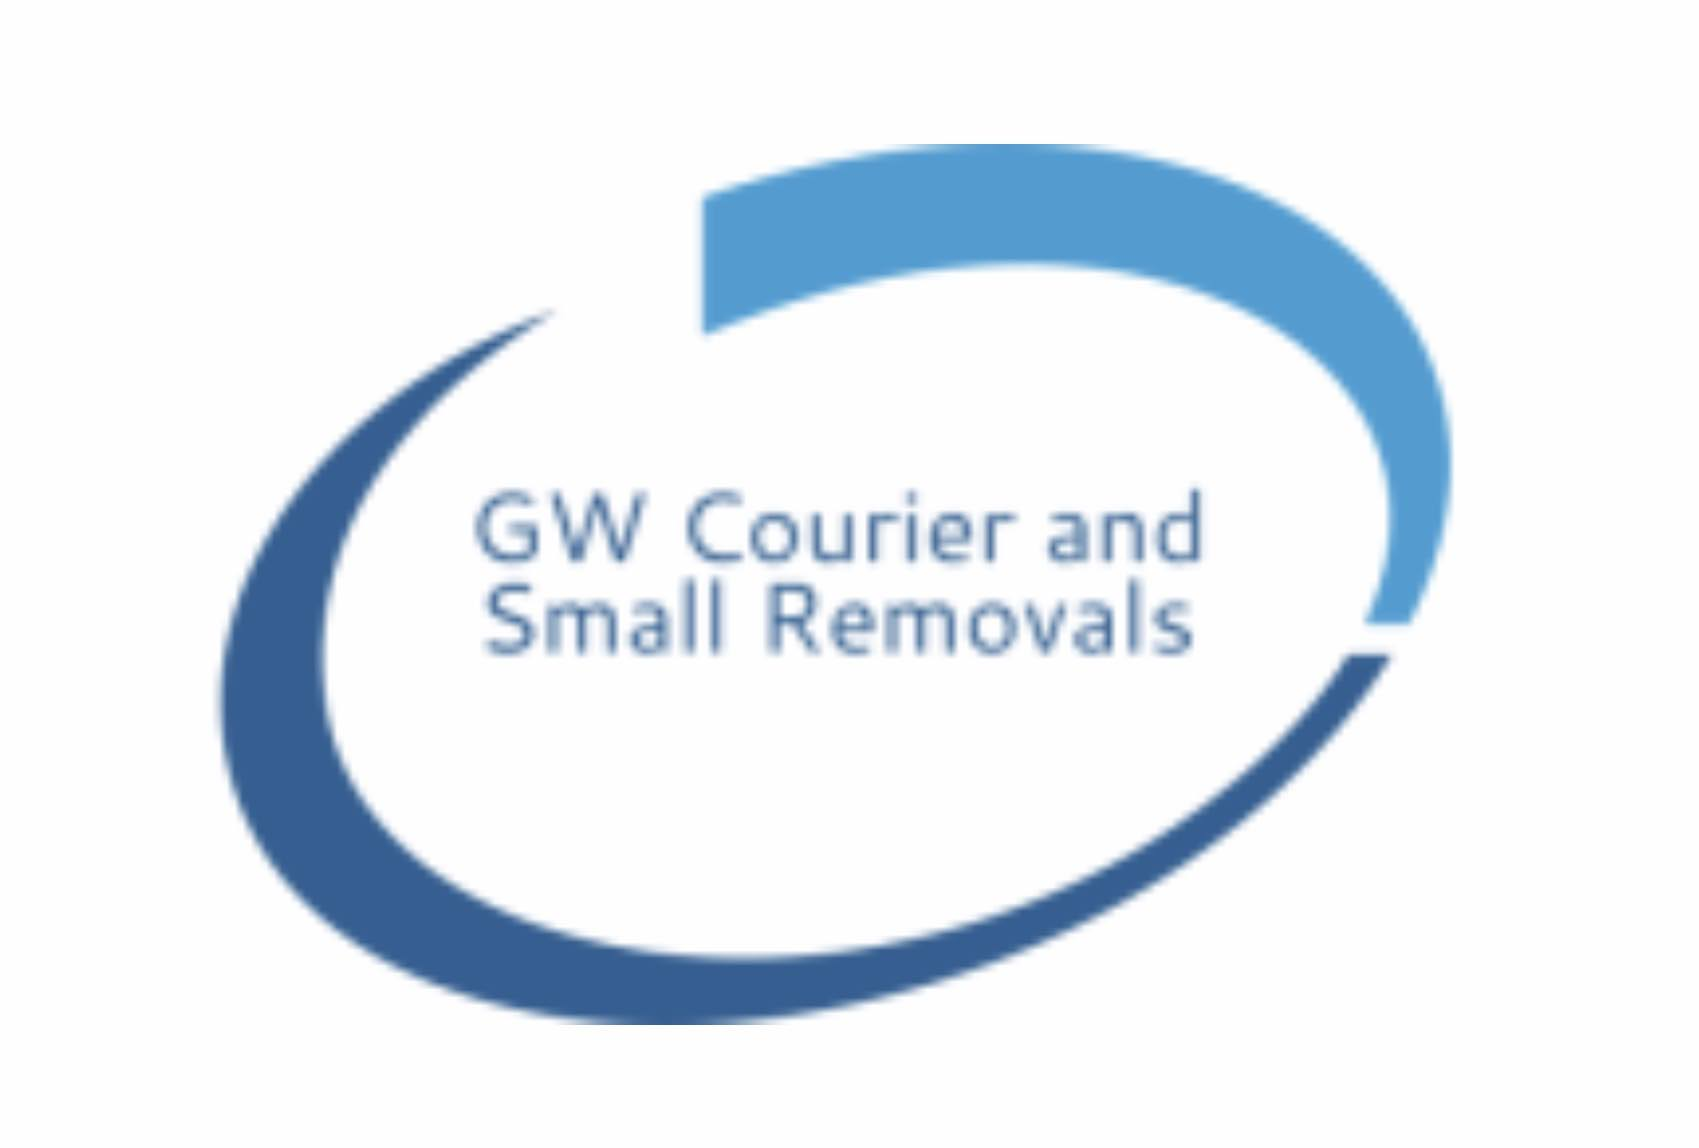 GW Courier and Small Removals